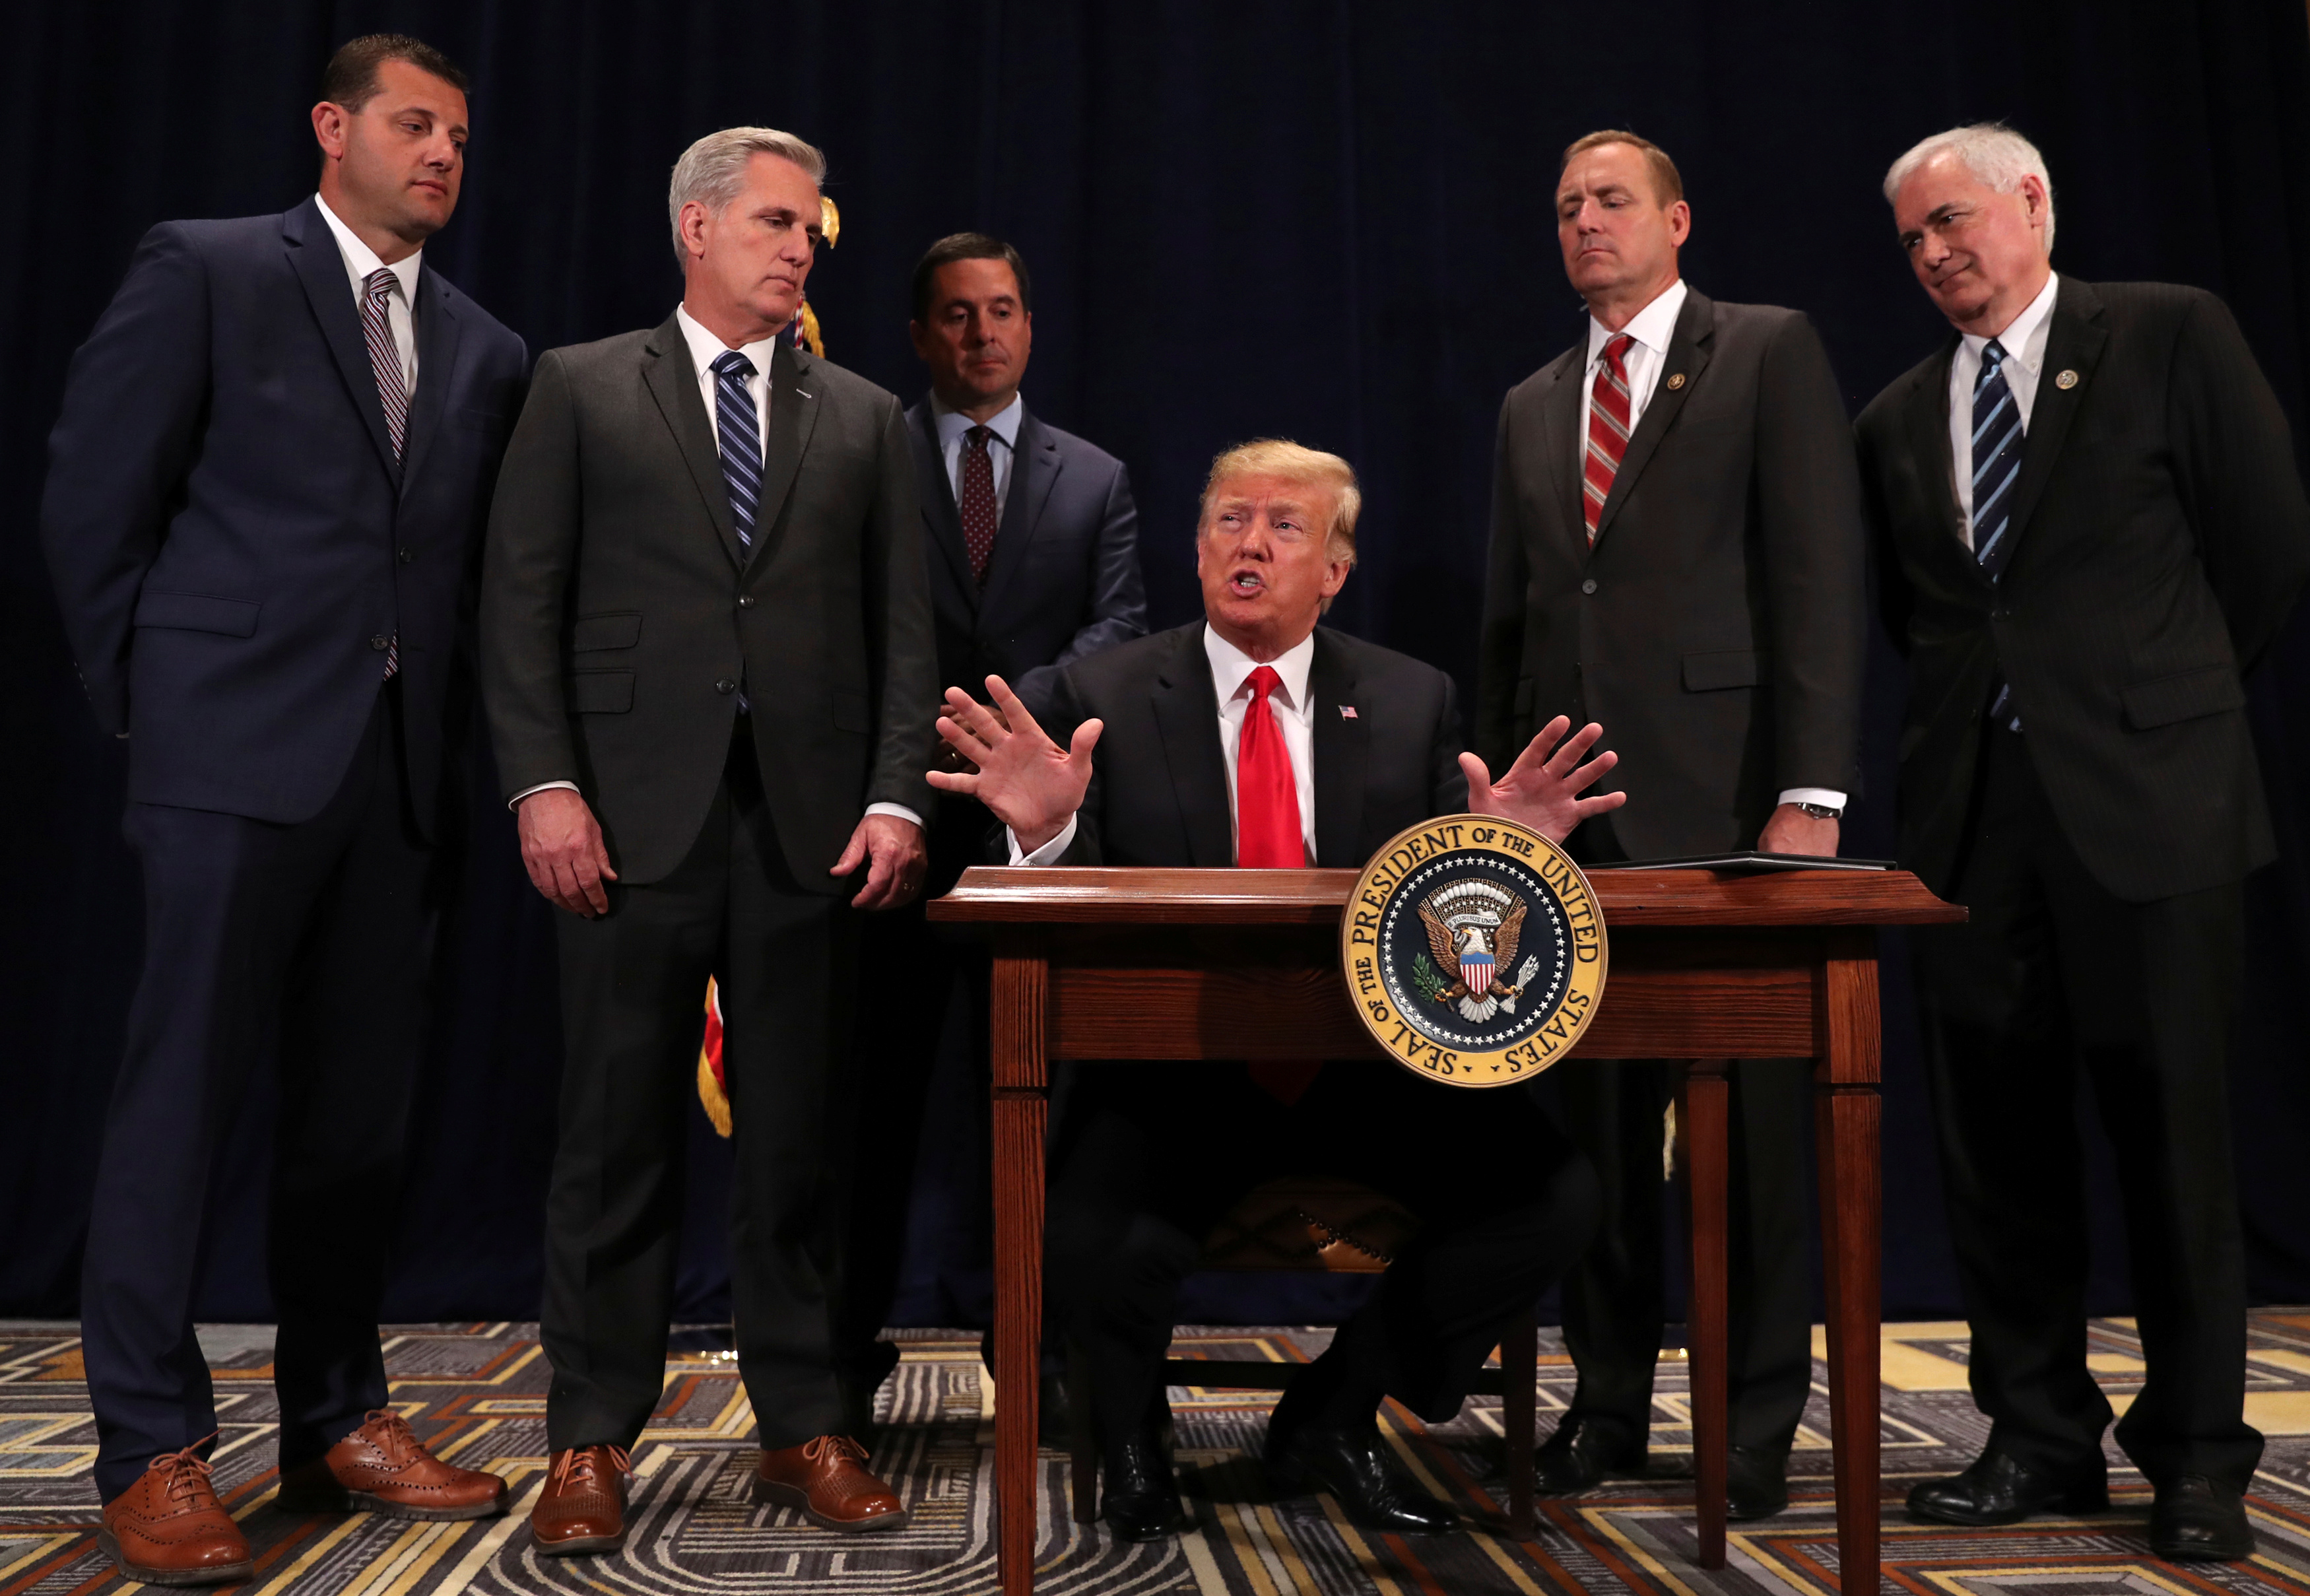 U.S. President Donald Trump, flanked by U.S. Representative David Valadao (R-CA), House Majority Leader Kevin McCarthy (R-CA), Representative Devin Nunes (R-CA), Representative Jeff Denham (R-CA) and Representative Tom McClintock (R-CA), speaks to reporters after signing a presidential memorandum focused on sending more water to farmers in California's Central Valley, at a conference center in Scottsdale, Arizona, U.S., October 19, 2018. REUTERS/Jonathan Ernst